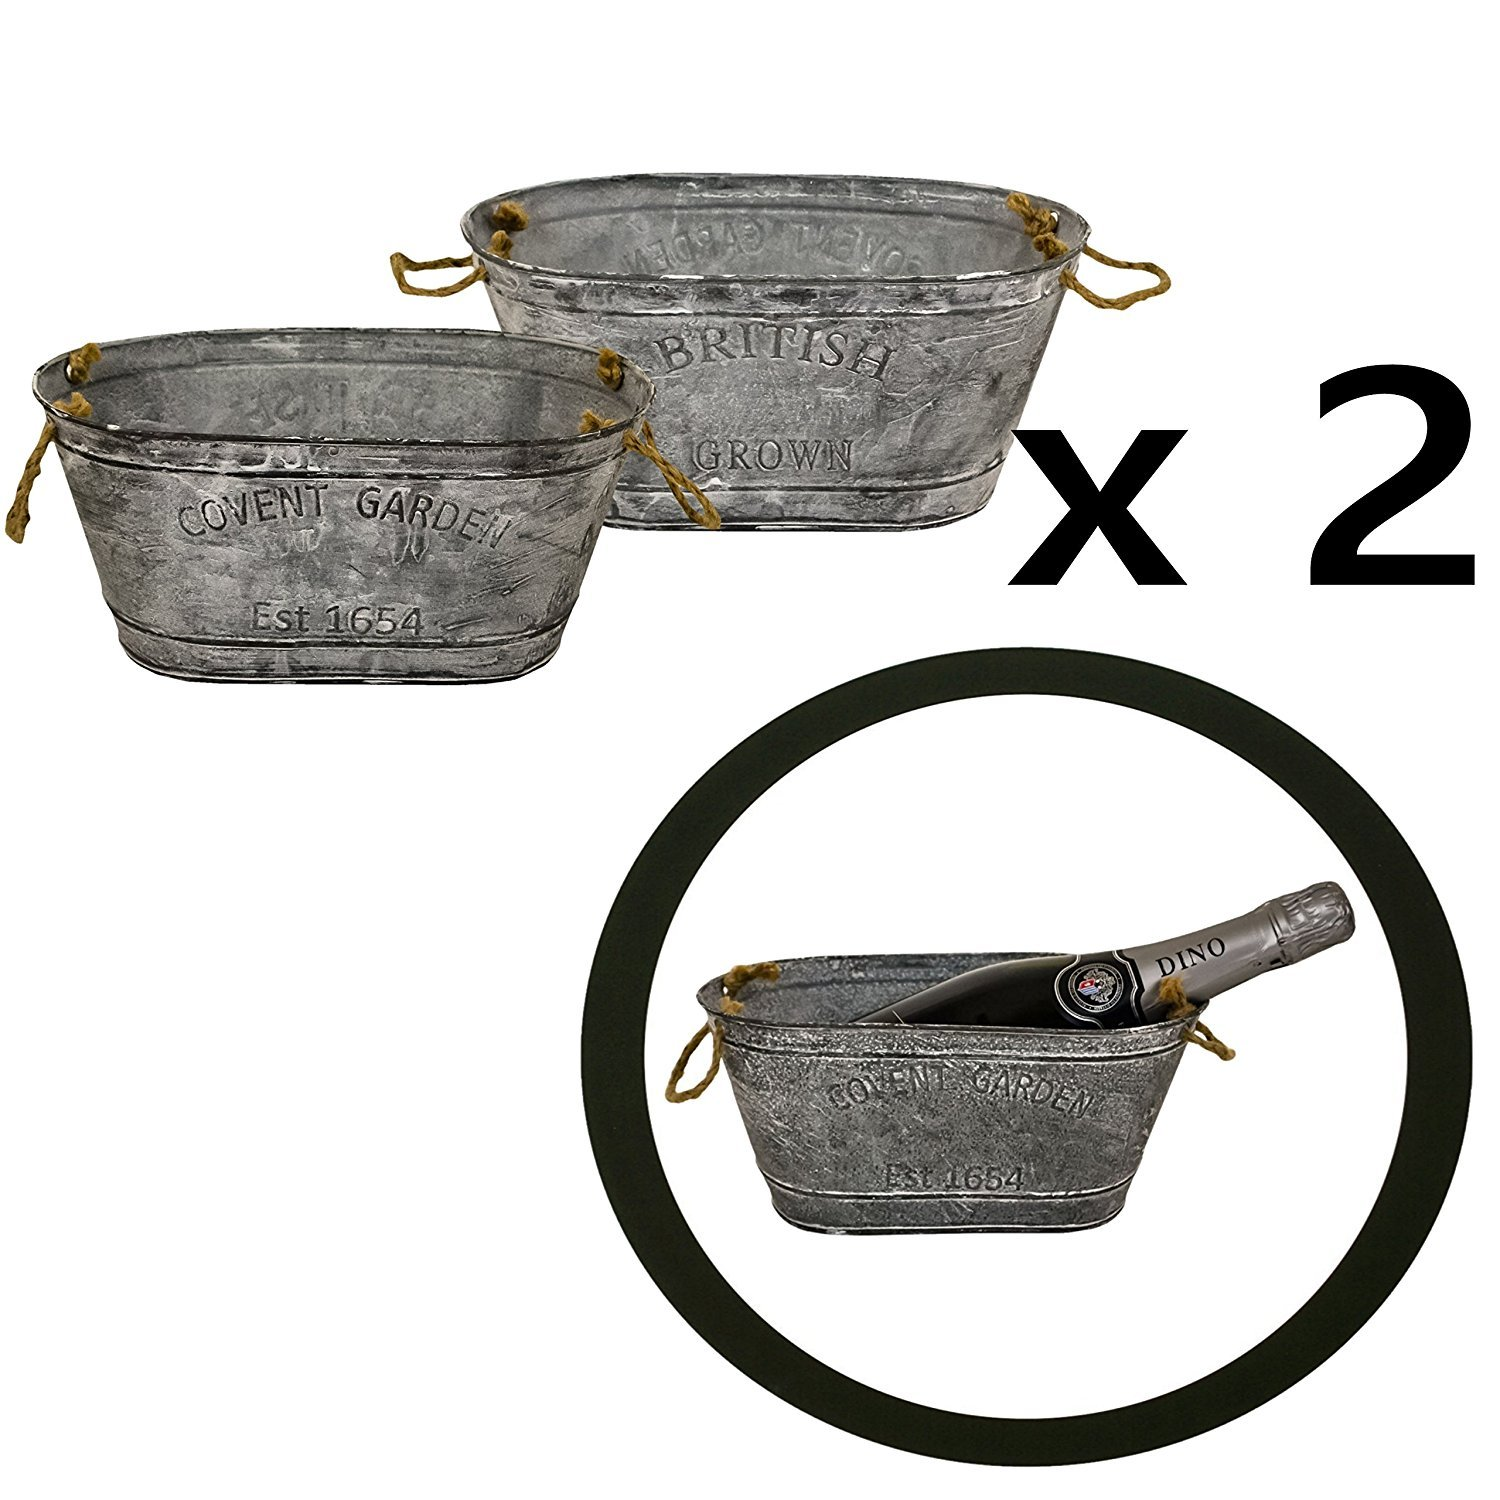 east2eden Set of 2 British Grown Covent Garden Galvanised Zinc Embossed Double Sided Small Oval Metal Tin Plant Flower Planter Pot Box